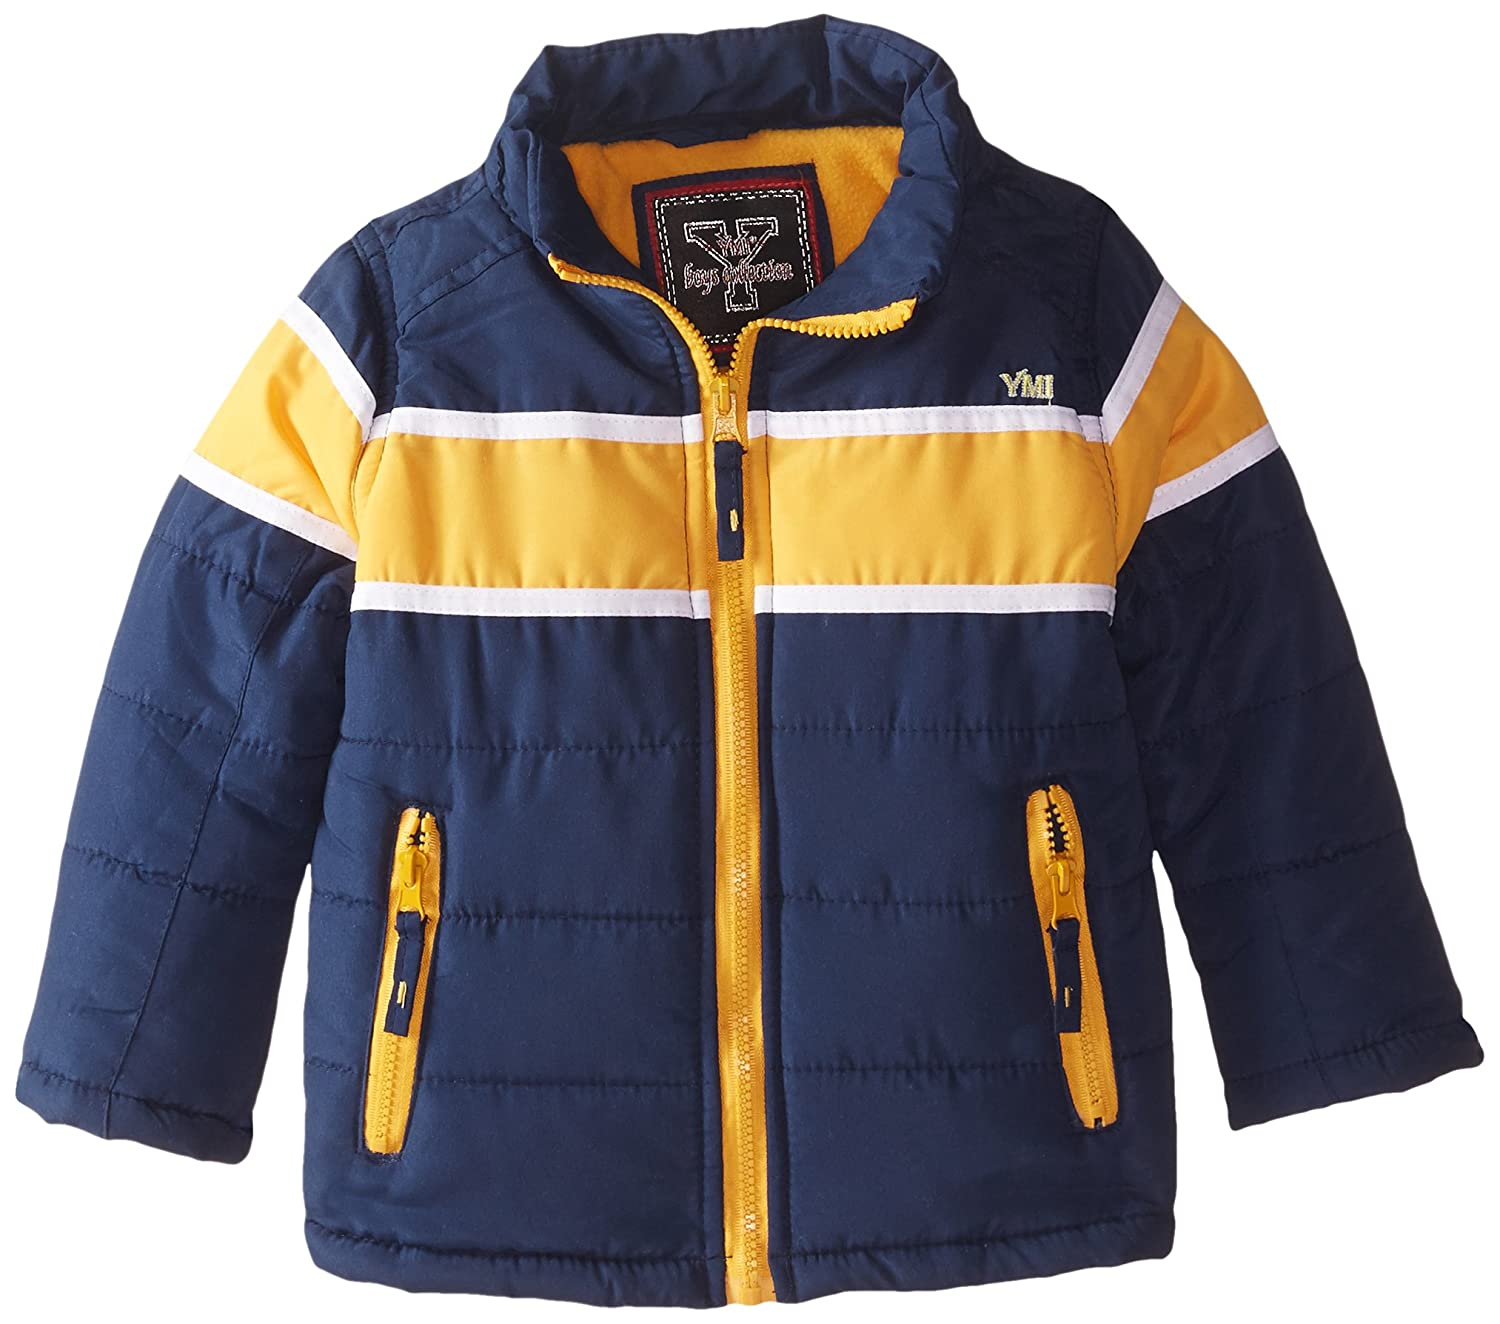 YMI Boys Bubble Jacket with Contrasting Horizontal Racing Stripe and Detachable Hood YMI Boys 2-7 1356KG